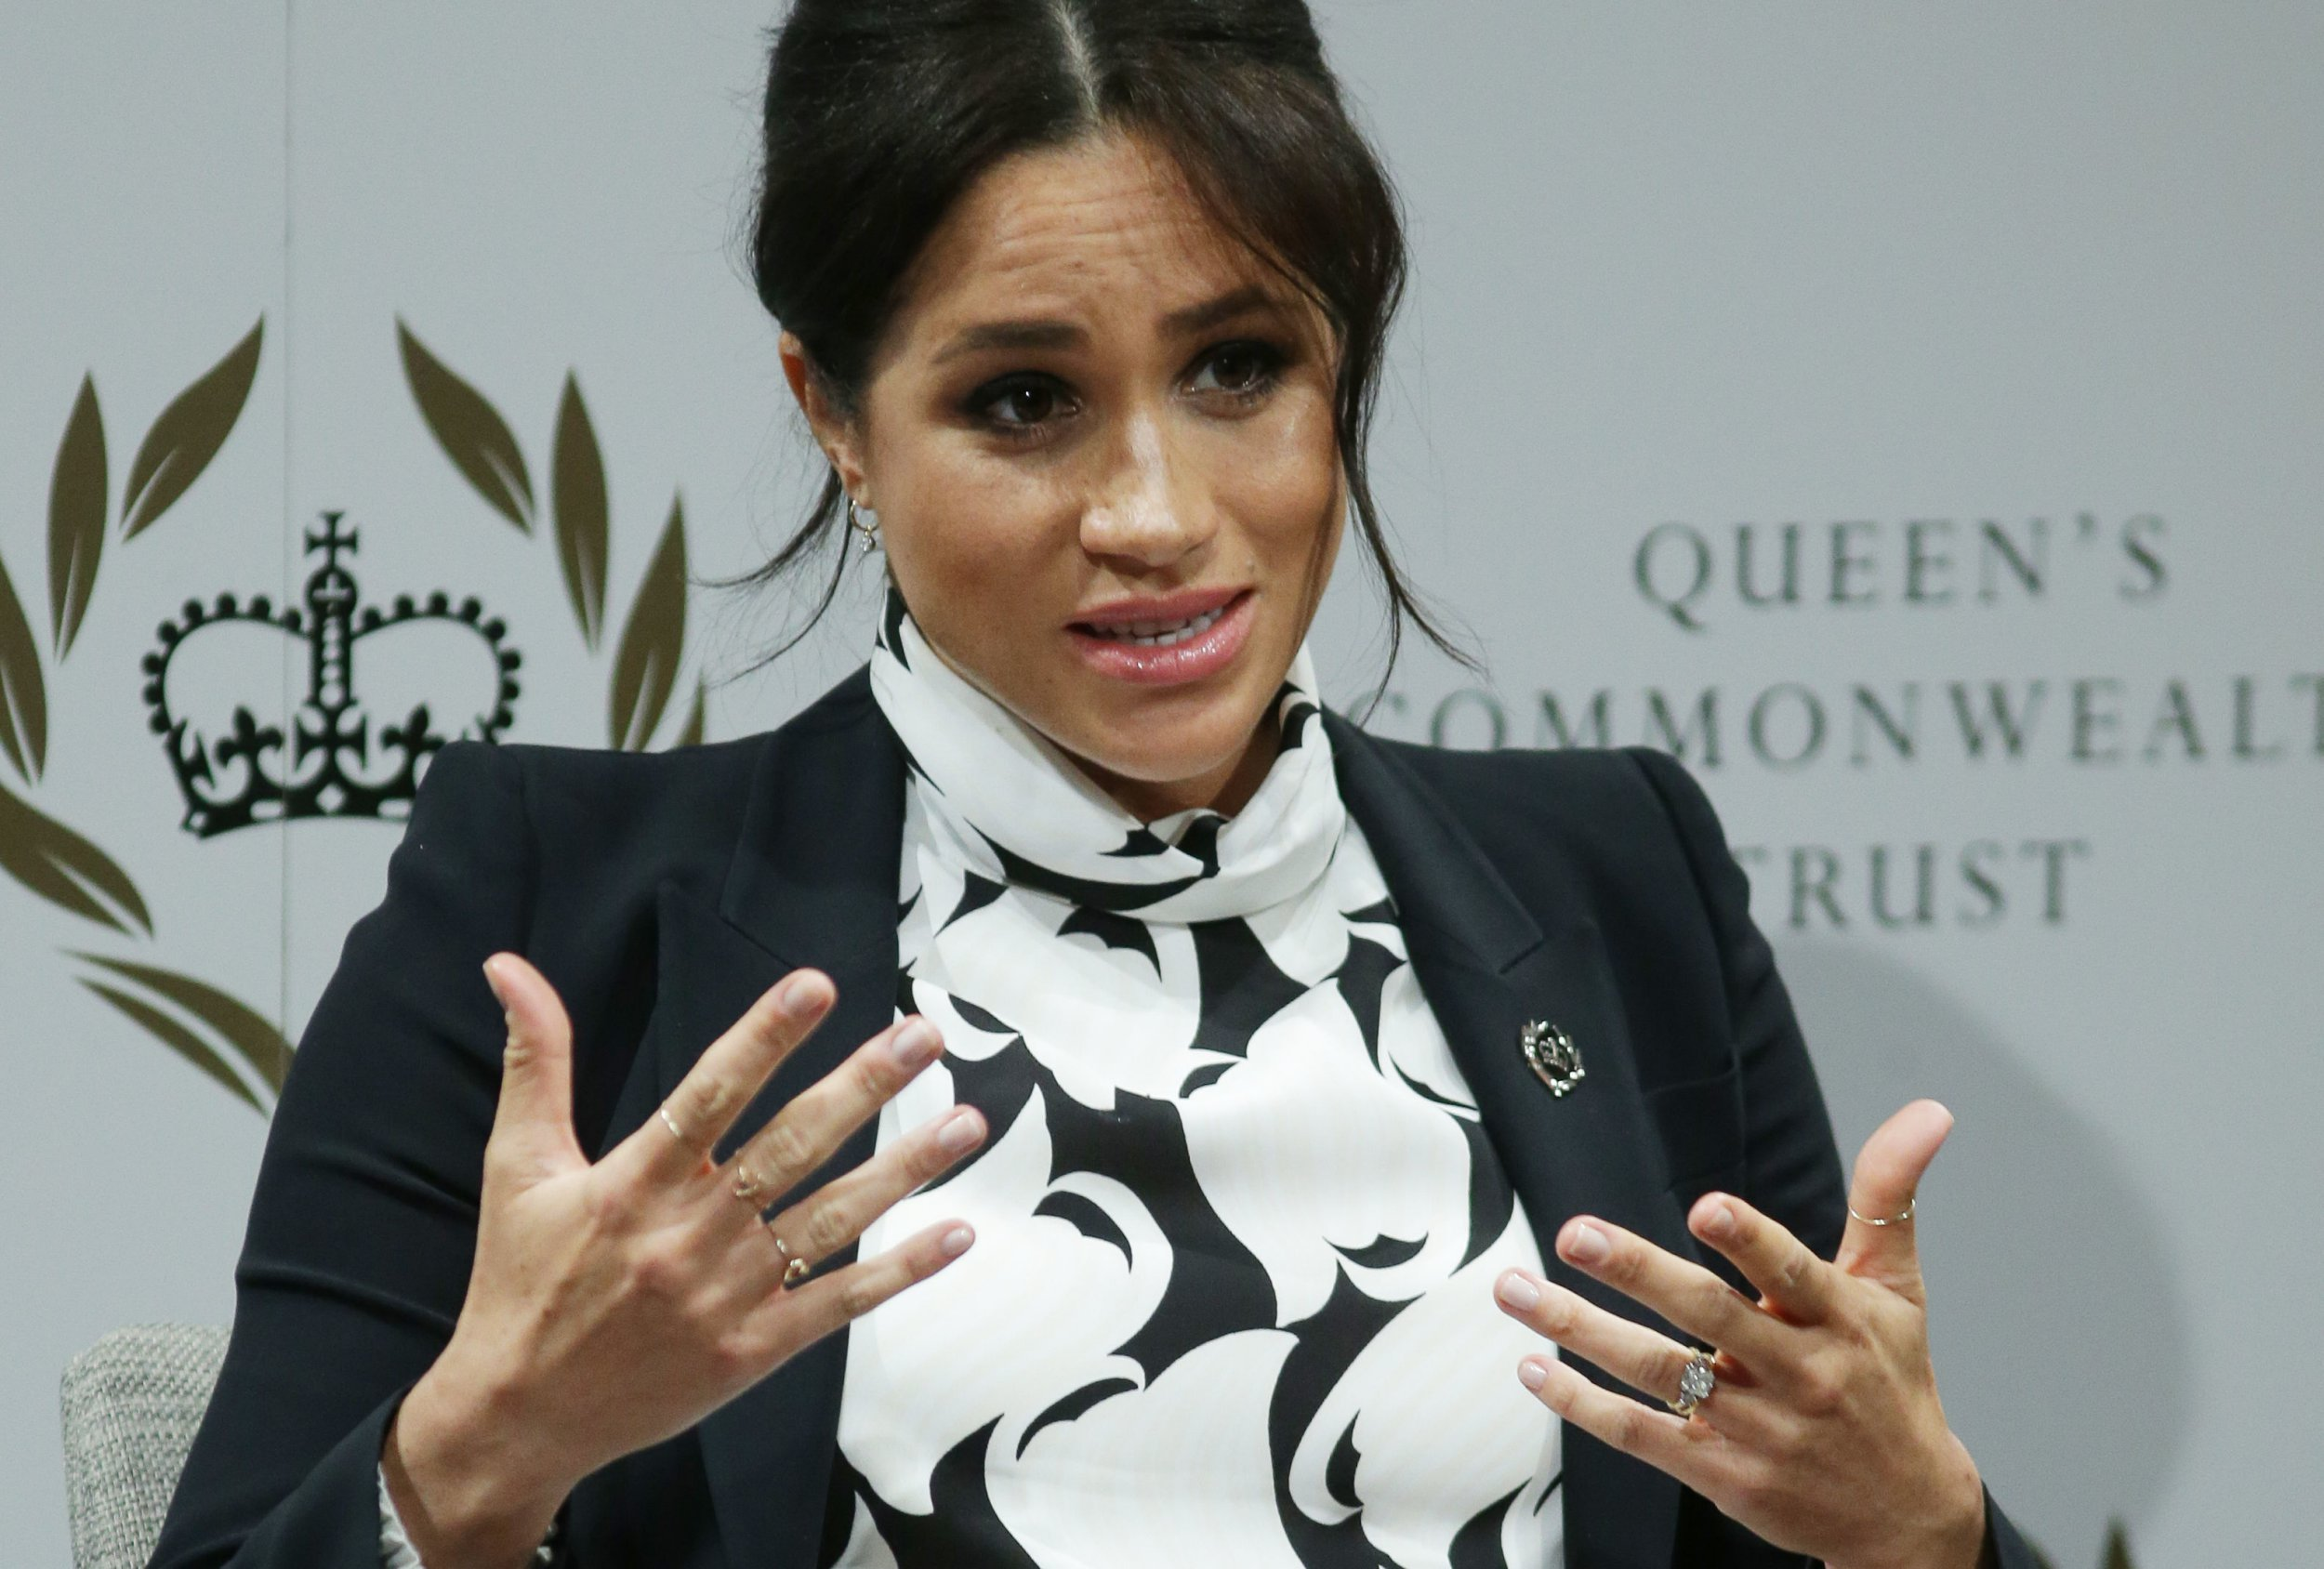 The Duchess of Sussex during a panel discussion convened by The Queen's Commonwealth Trust to mark International Women's Day at King's College in London. PRESS ASSOCIATION Photo. Picture date: Friday March 8, 2019. See PA story ROYAL Meghan. Photo credit should read: Daniel Leal-Olivas/AFP/PA Wire